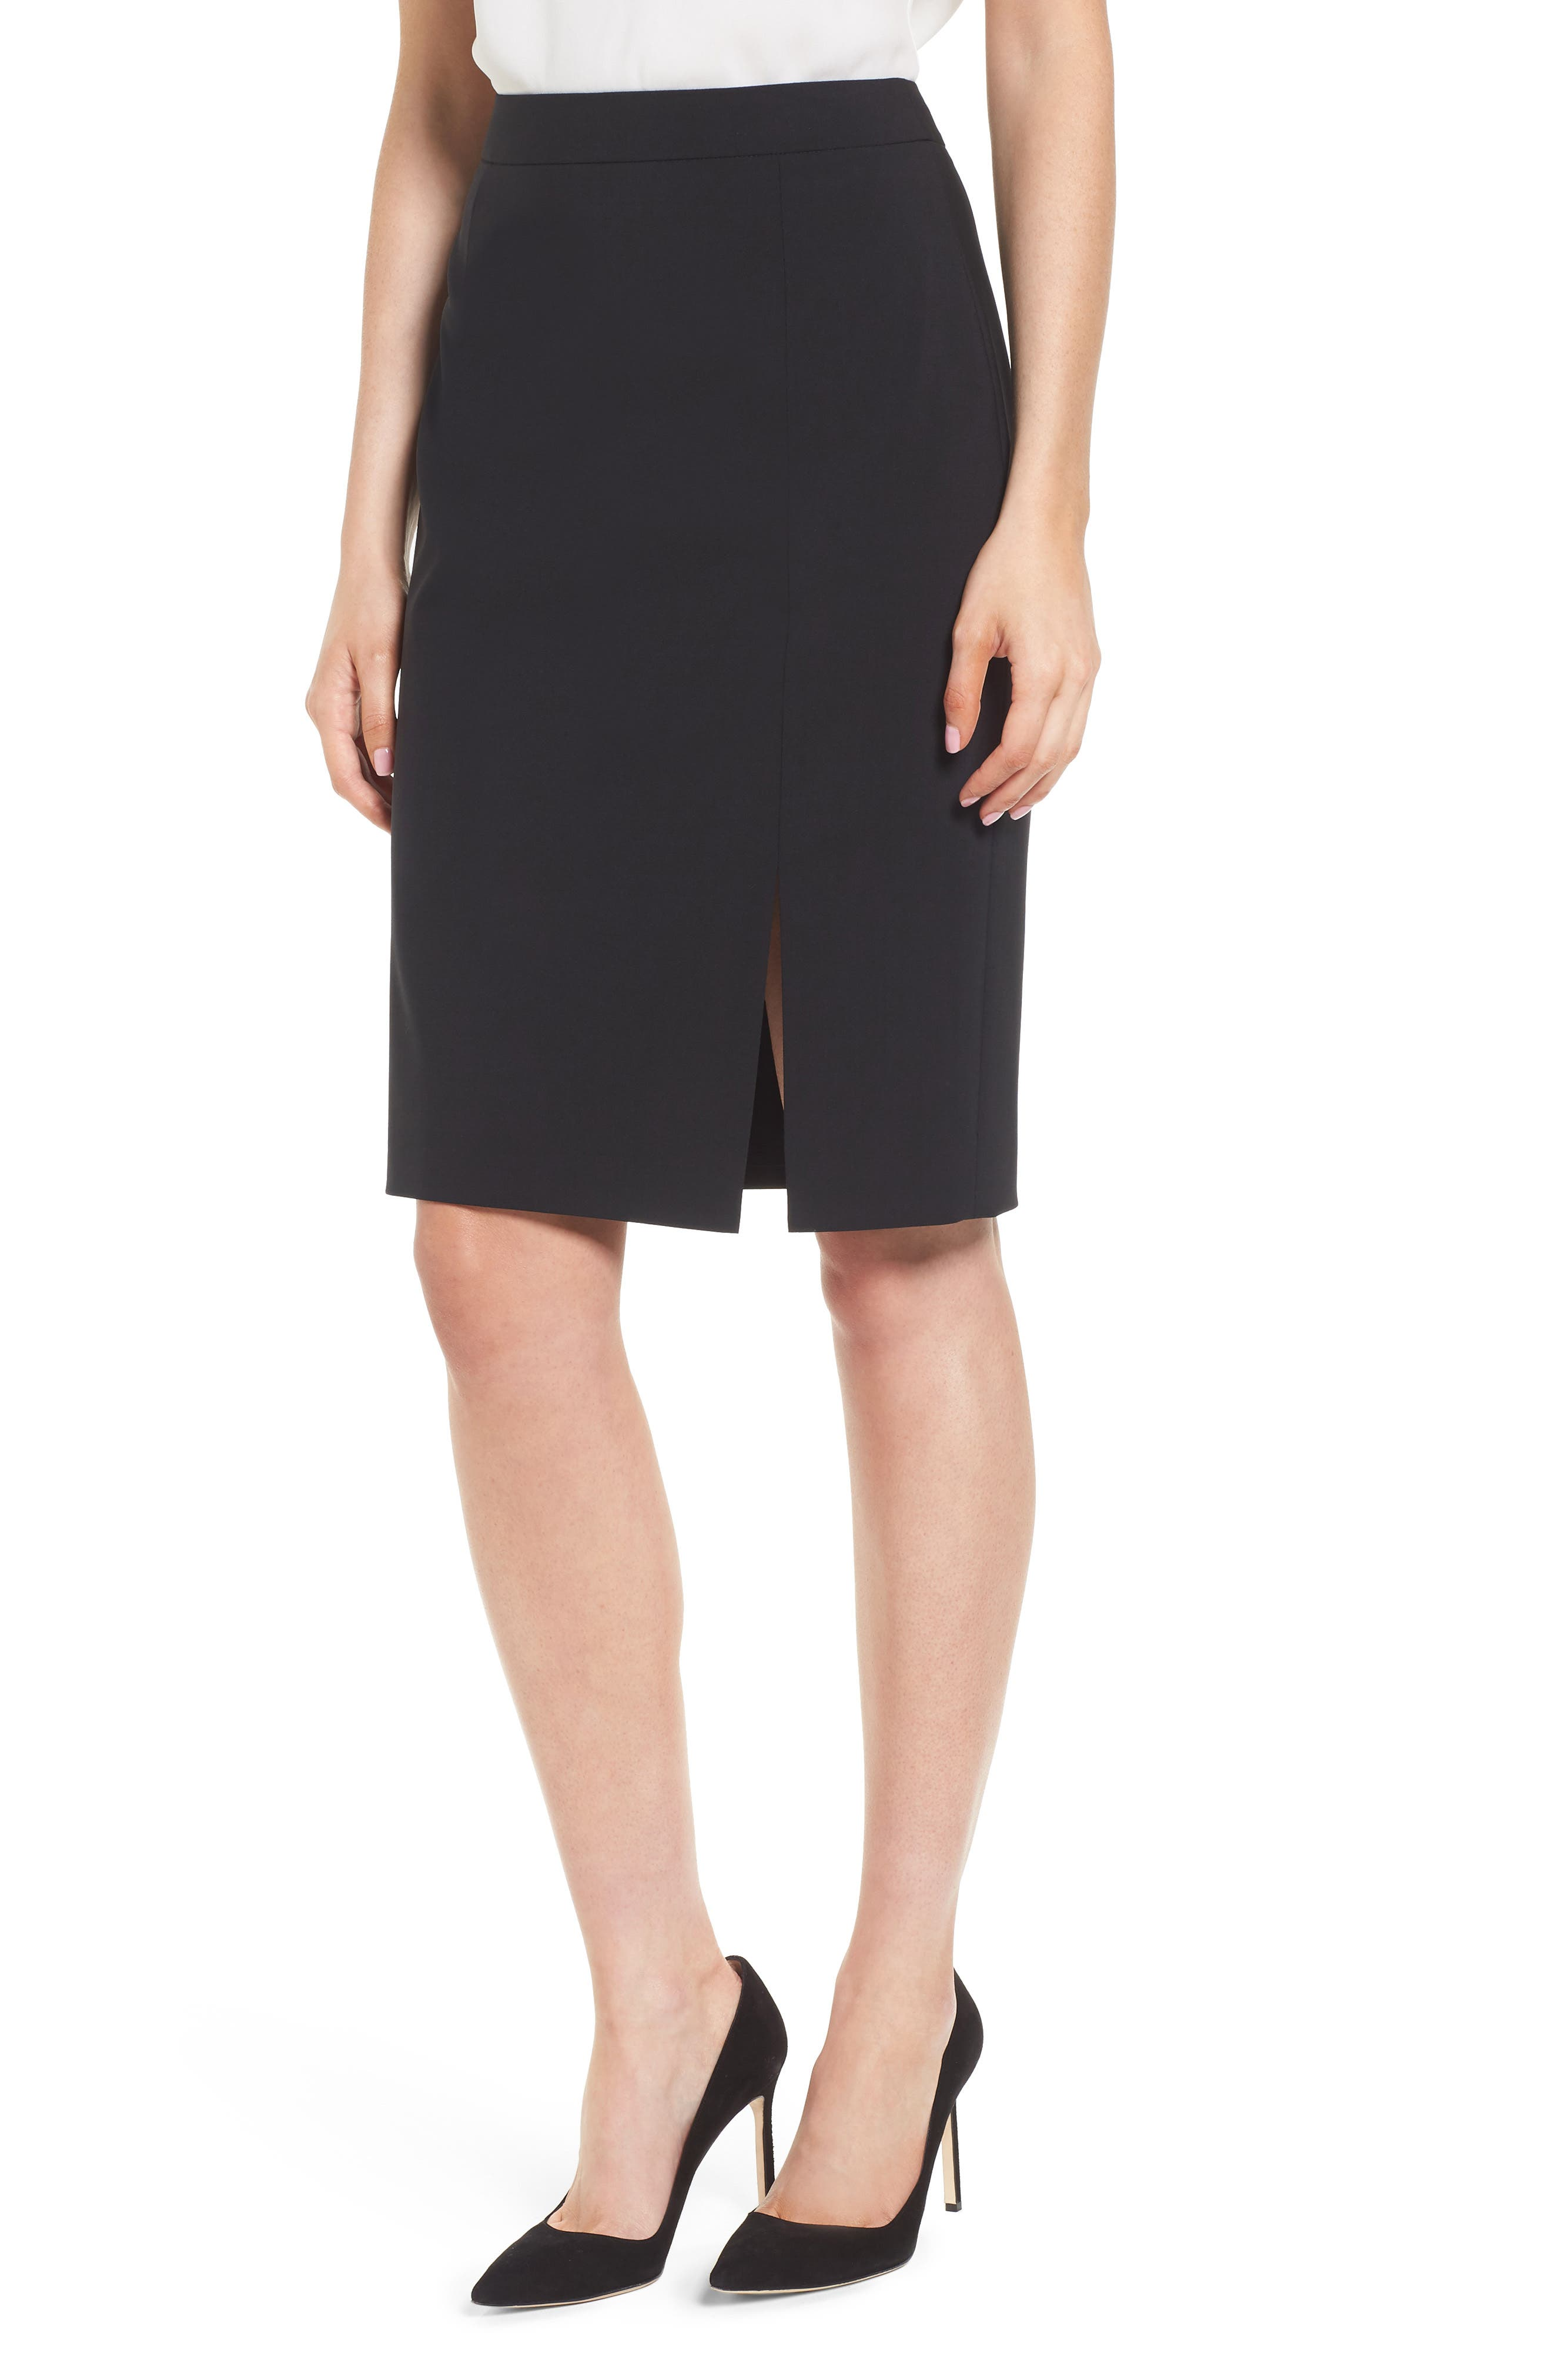 Volania Stretch Wool Pencil Skirt,                             Main thumbnail 1, color,                             Black